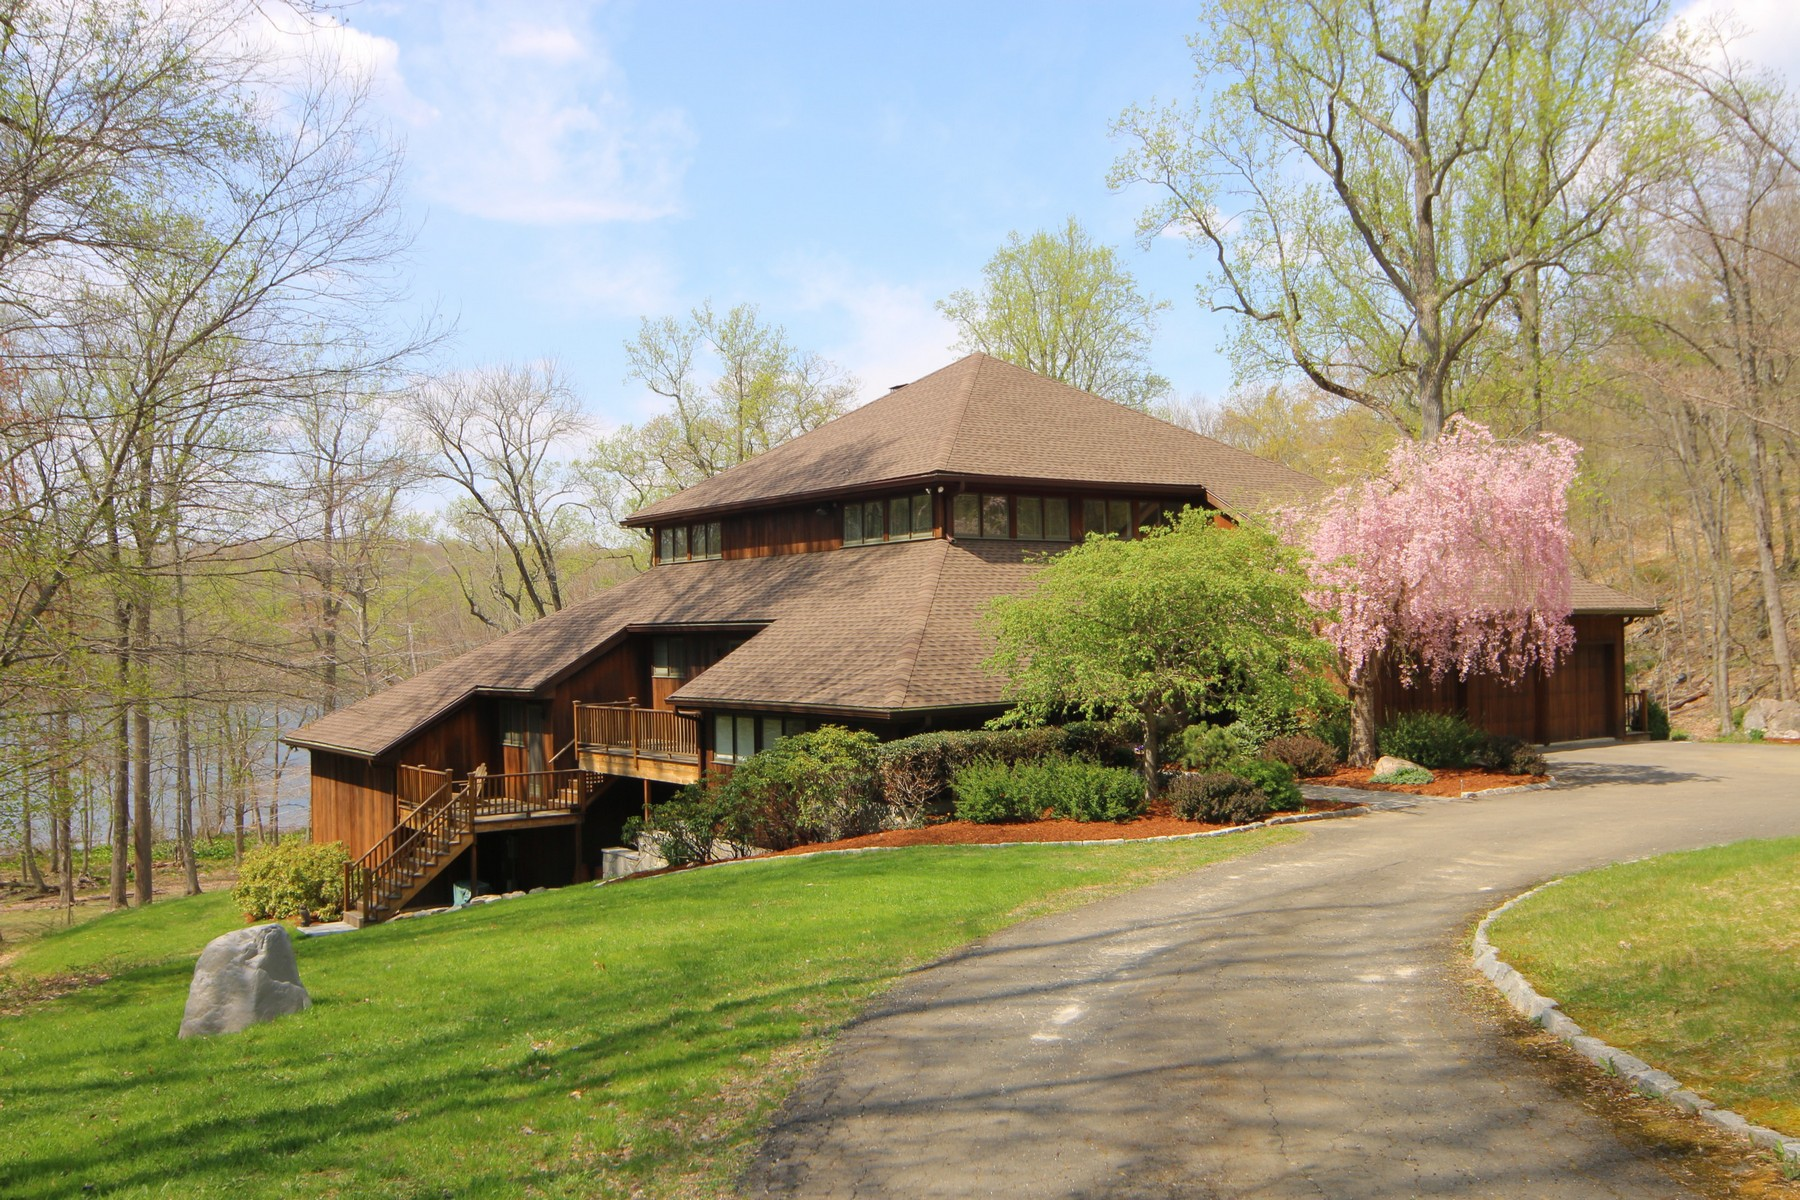 Single Family Home for Sale at Majestic Redwood Modern 258 West Mountain Road Ridgefield, Connecticut 06877 United States